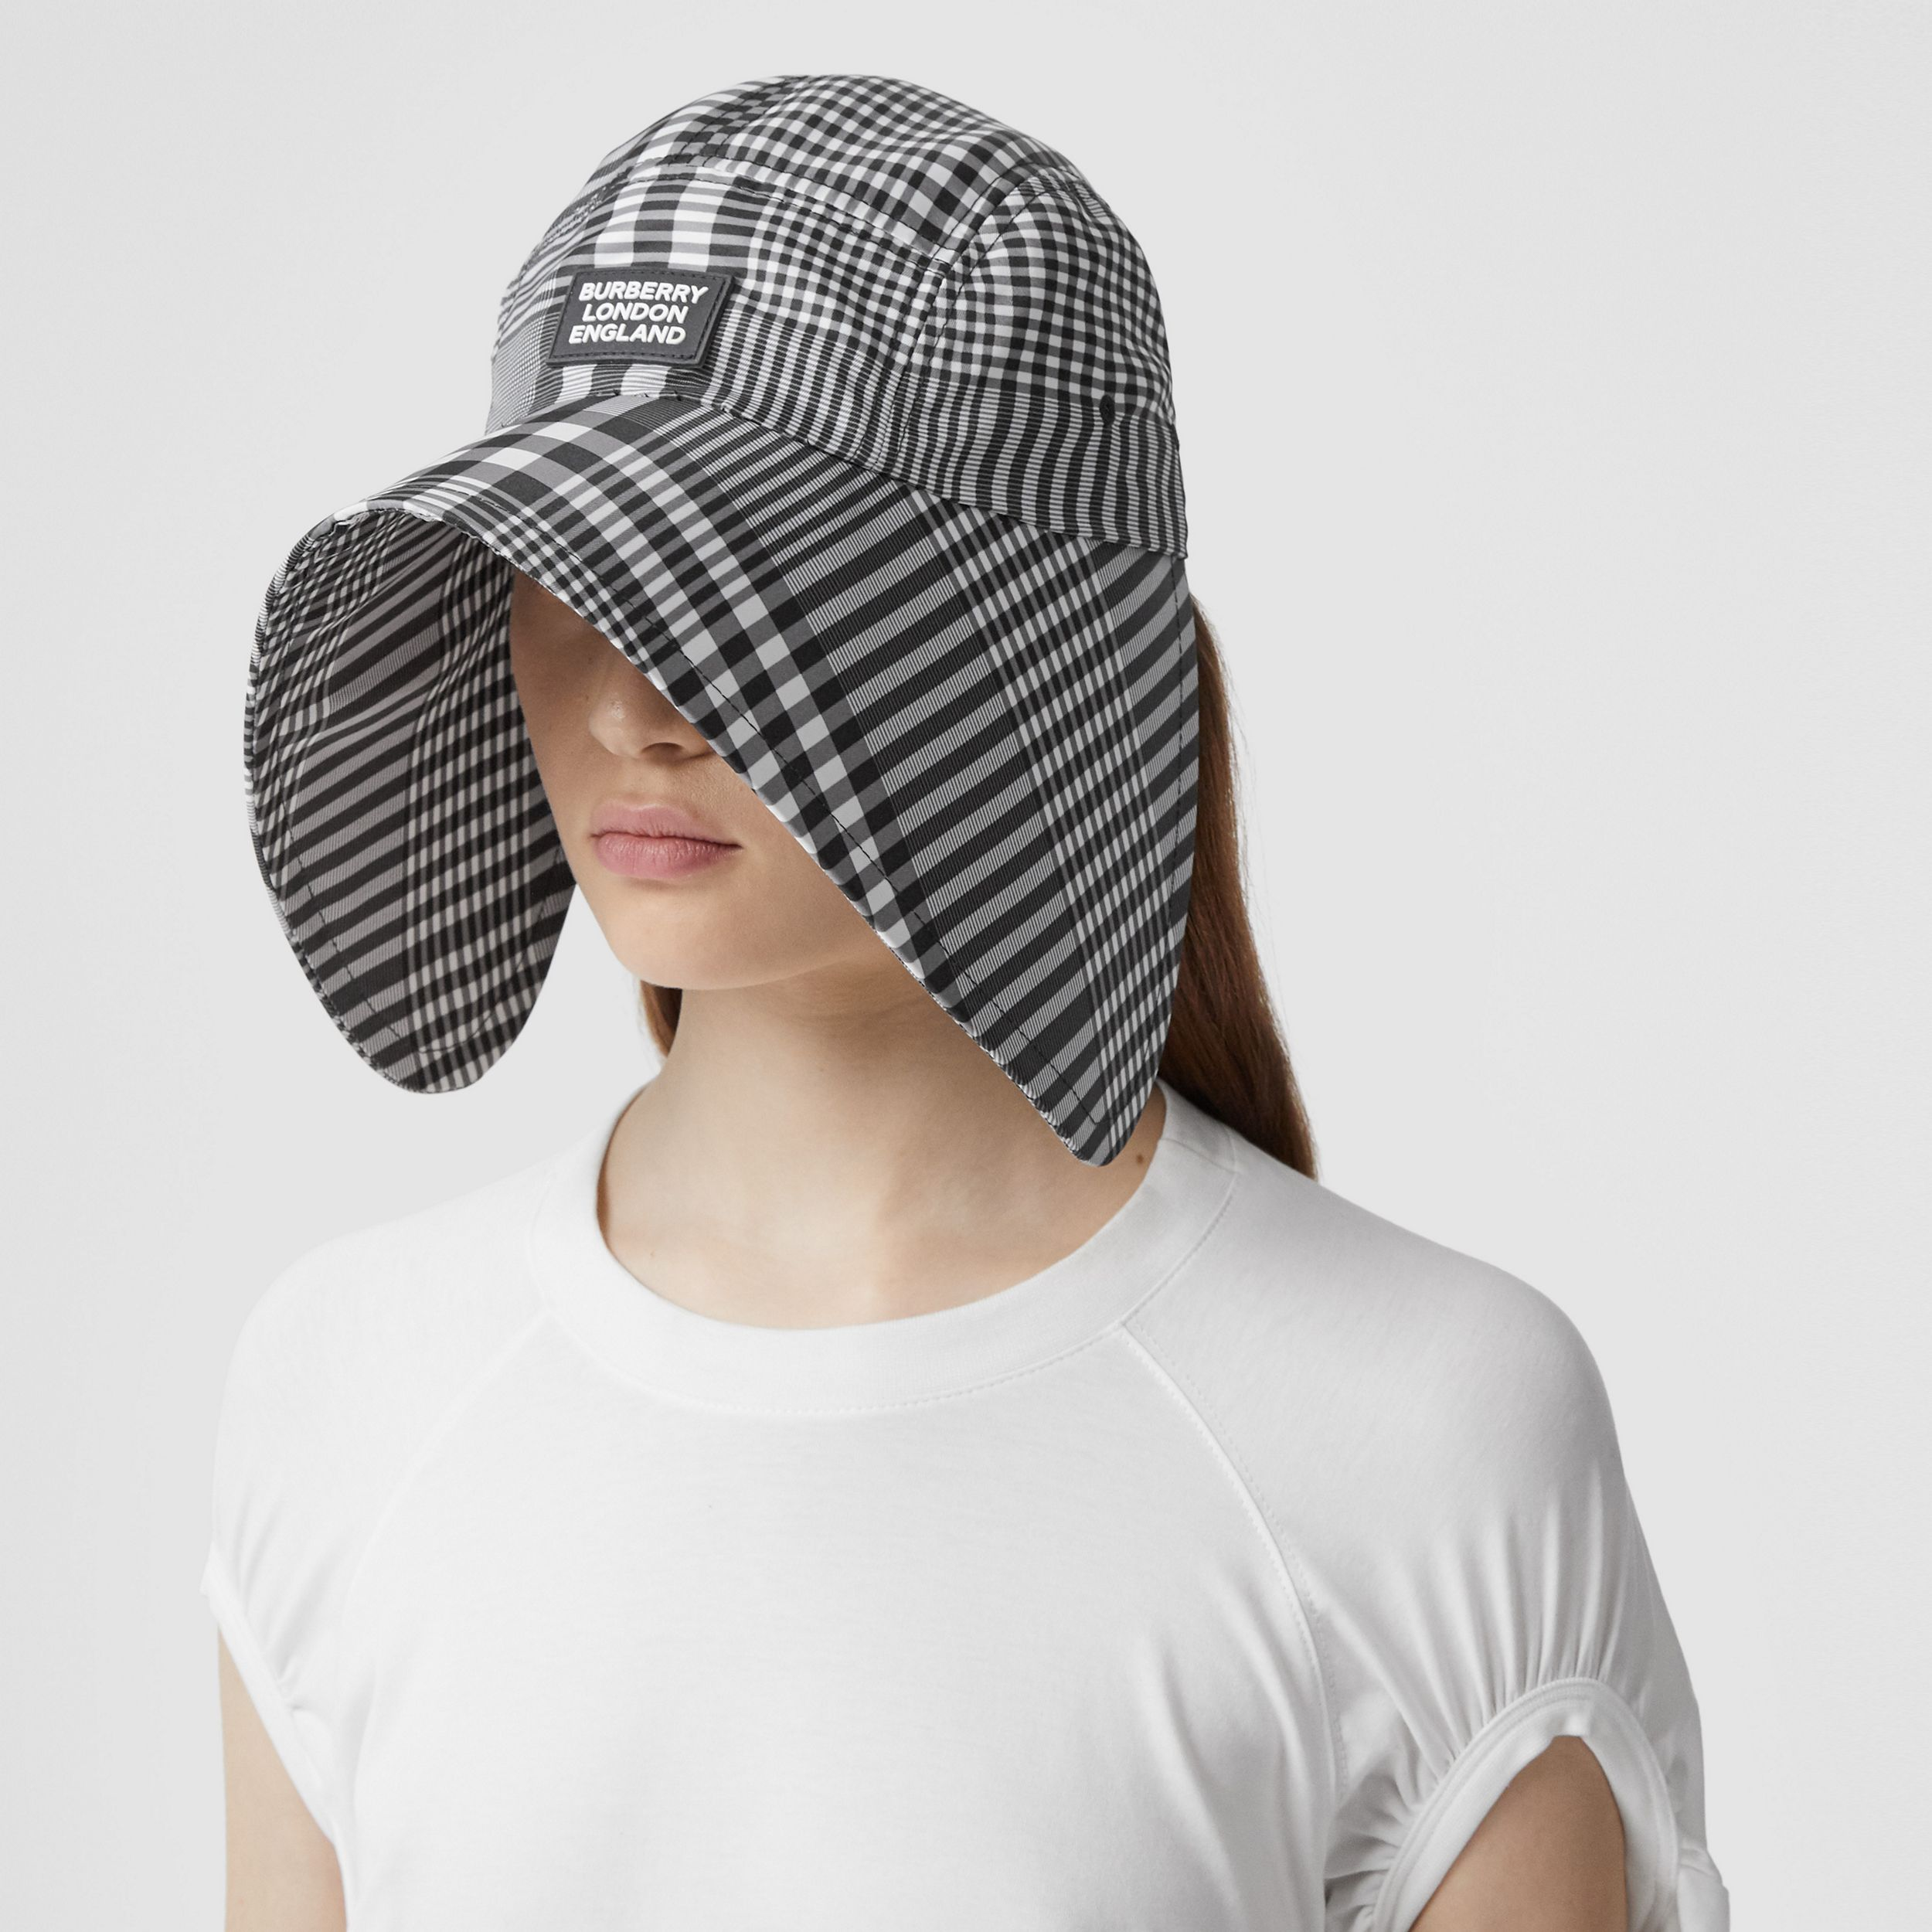 Logo Appliqué Check Bonnet Cap in Black/white | Burberry - 3